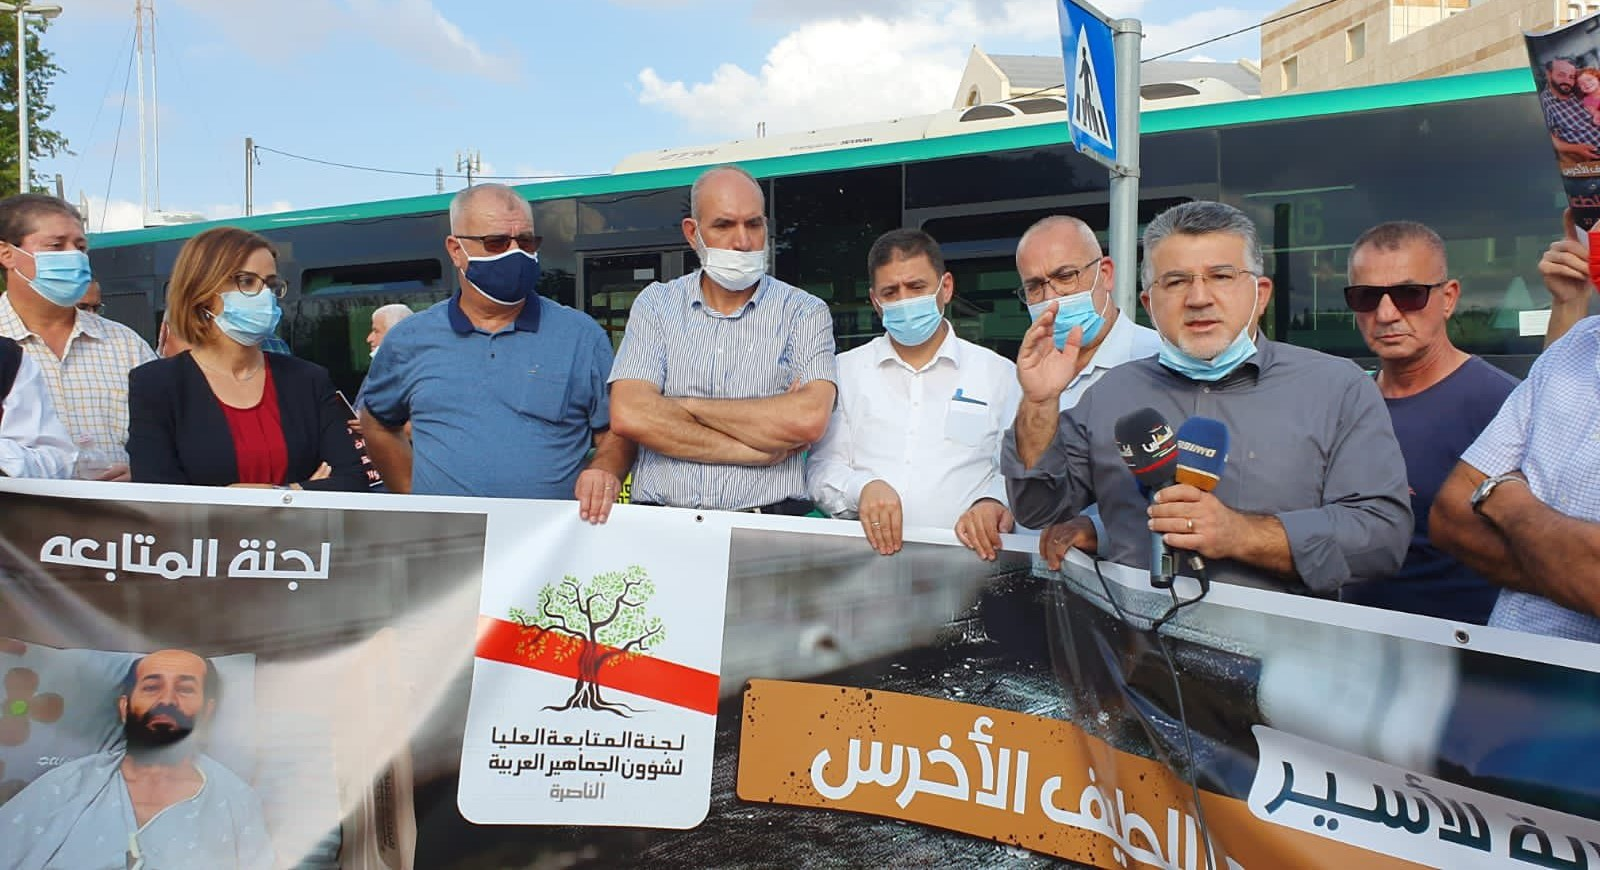 Hadash MK Yousef Jabareen (Joint List) speaks at the solidarity demonstration outside the Medical Center in Rehovot where the Palestinian prisoner Maher al-Akhras is being detained, Tuesday, November 3. The signs behind which the demonstrators are standing display the name of the High Follow-Up Committee for Arab citizens of Israel.